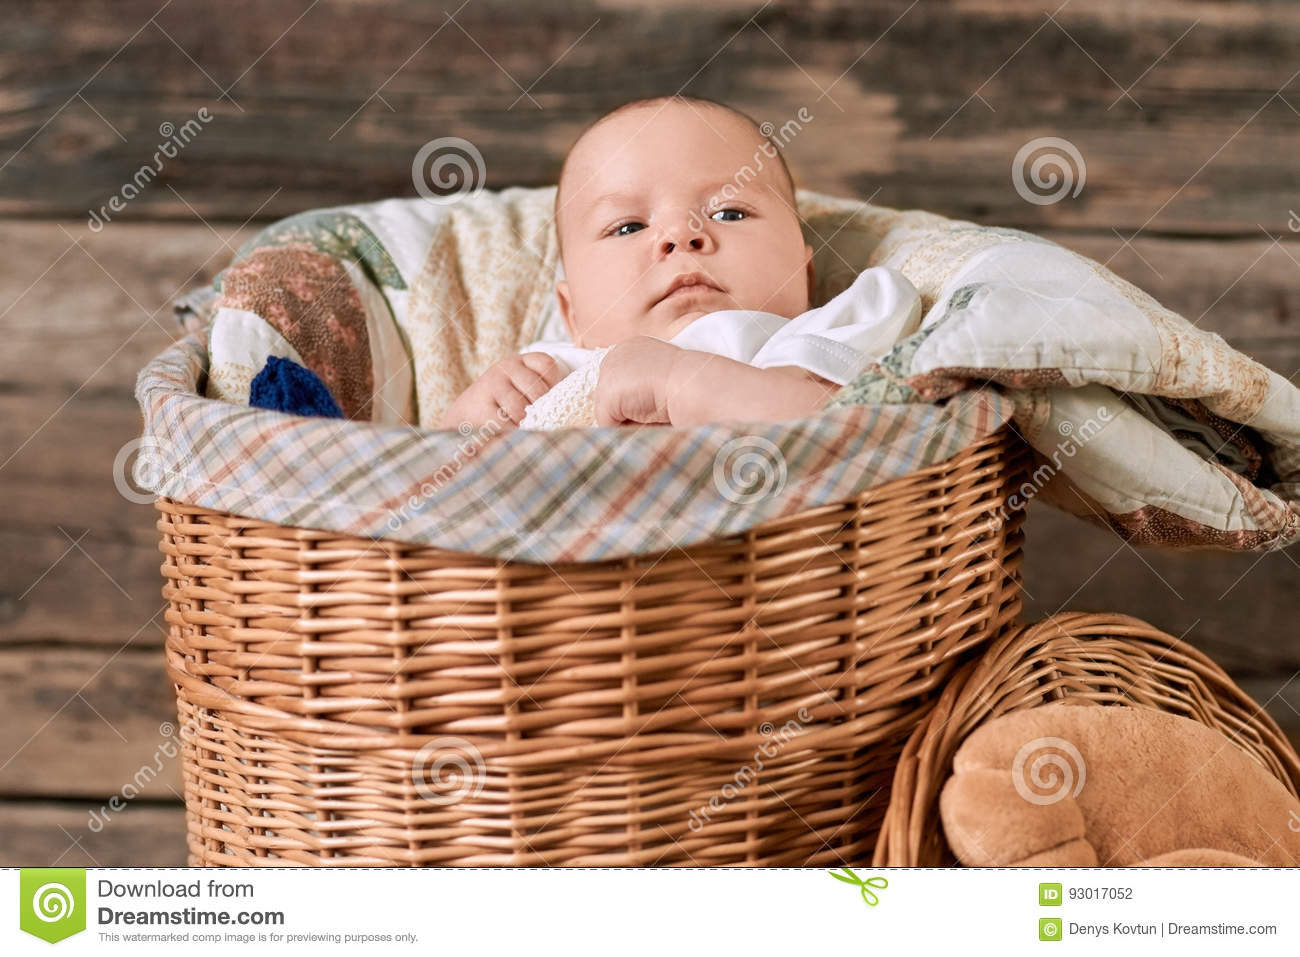 Baby in a willow basket.